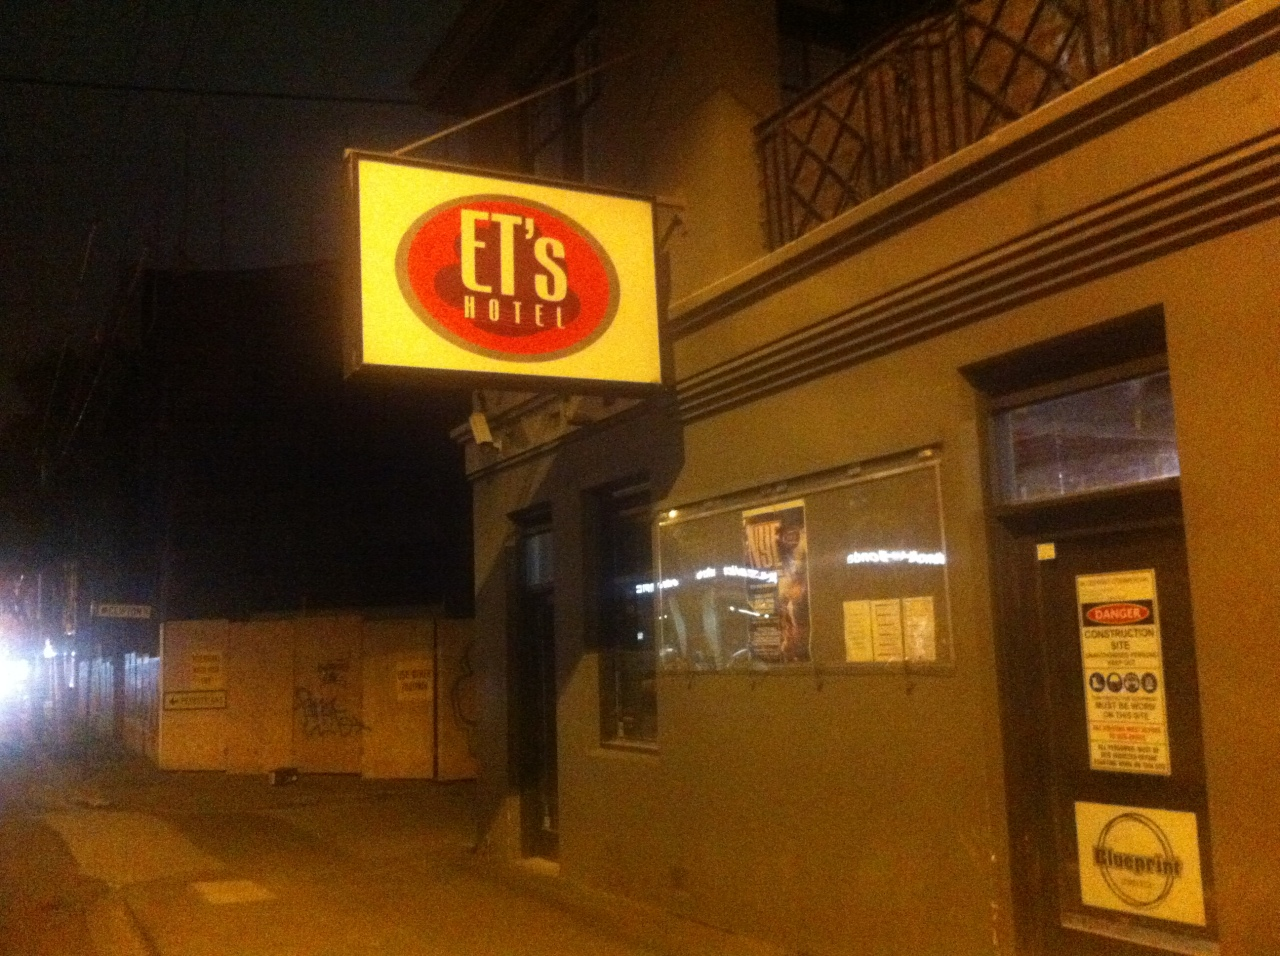 et's gloom hotel in Melbourne - closed down, no more open mic